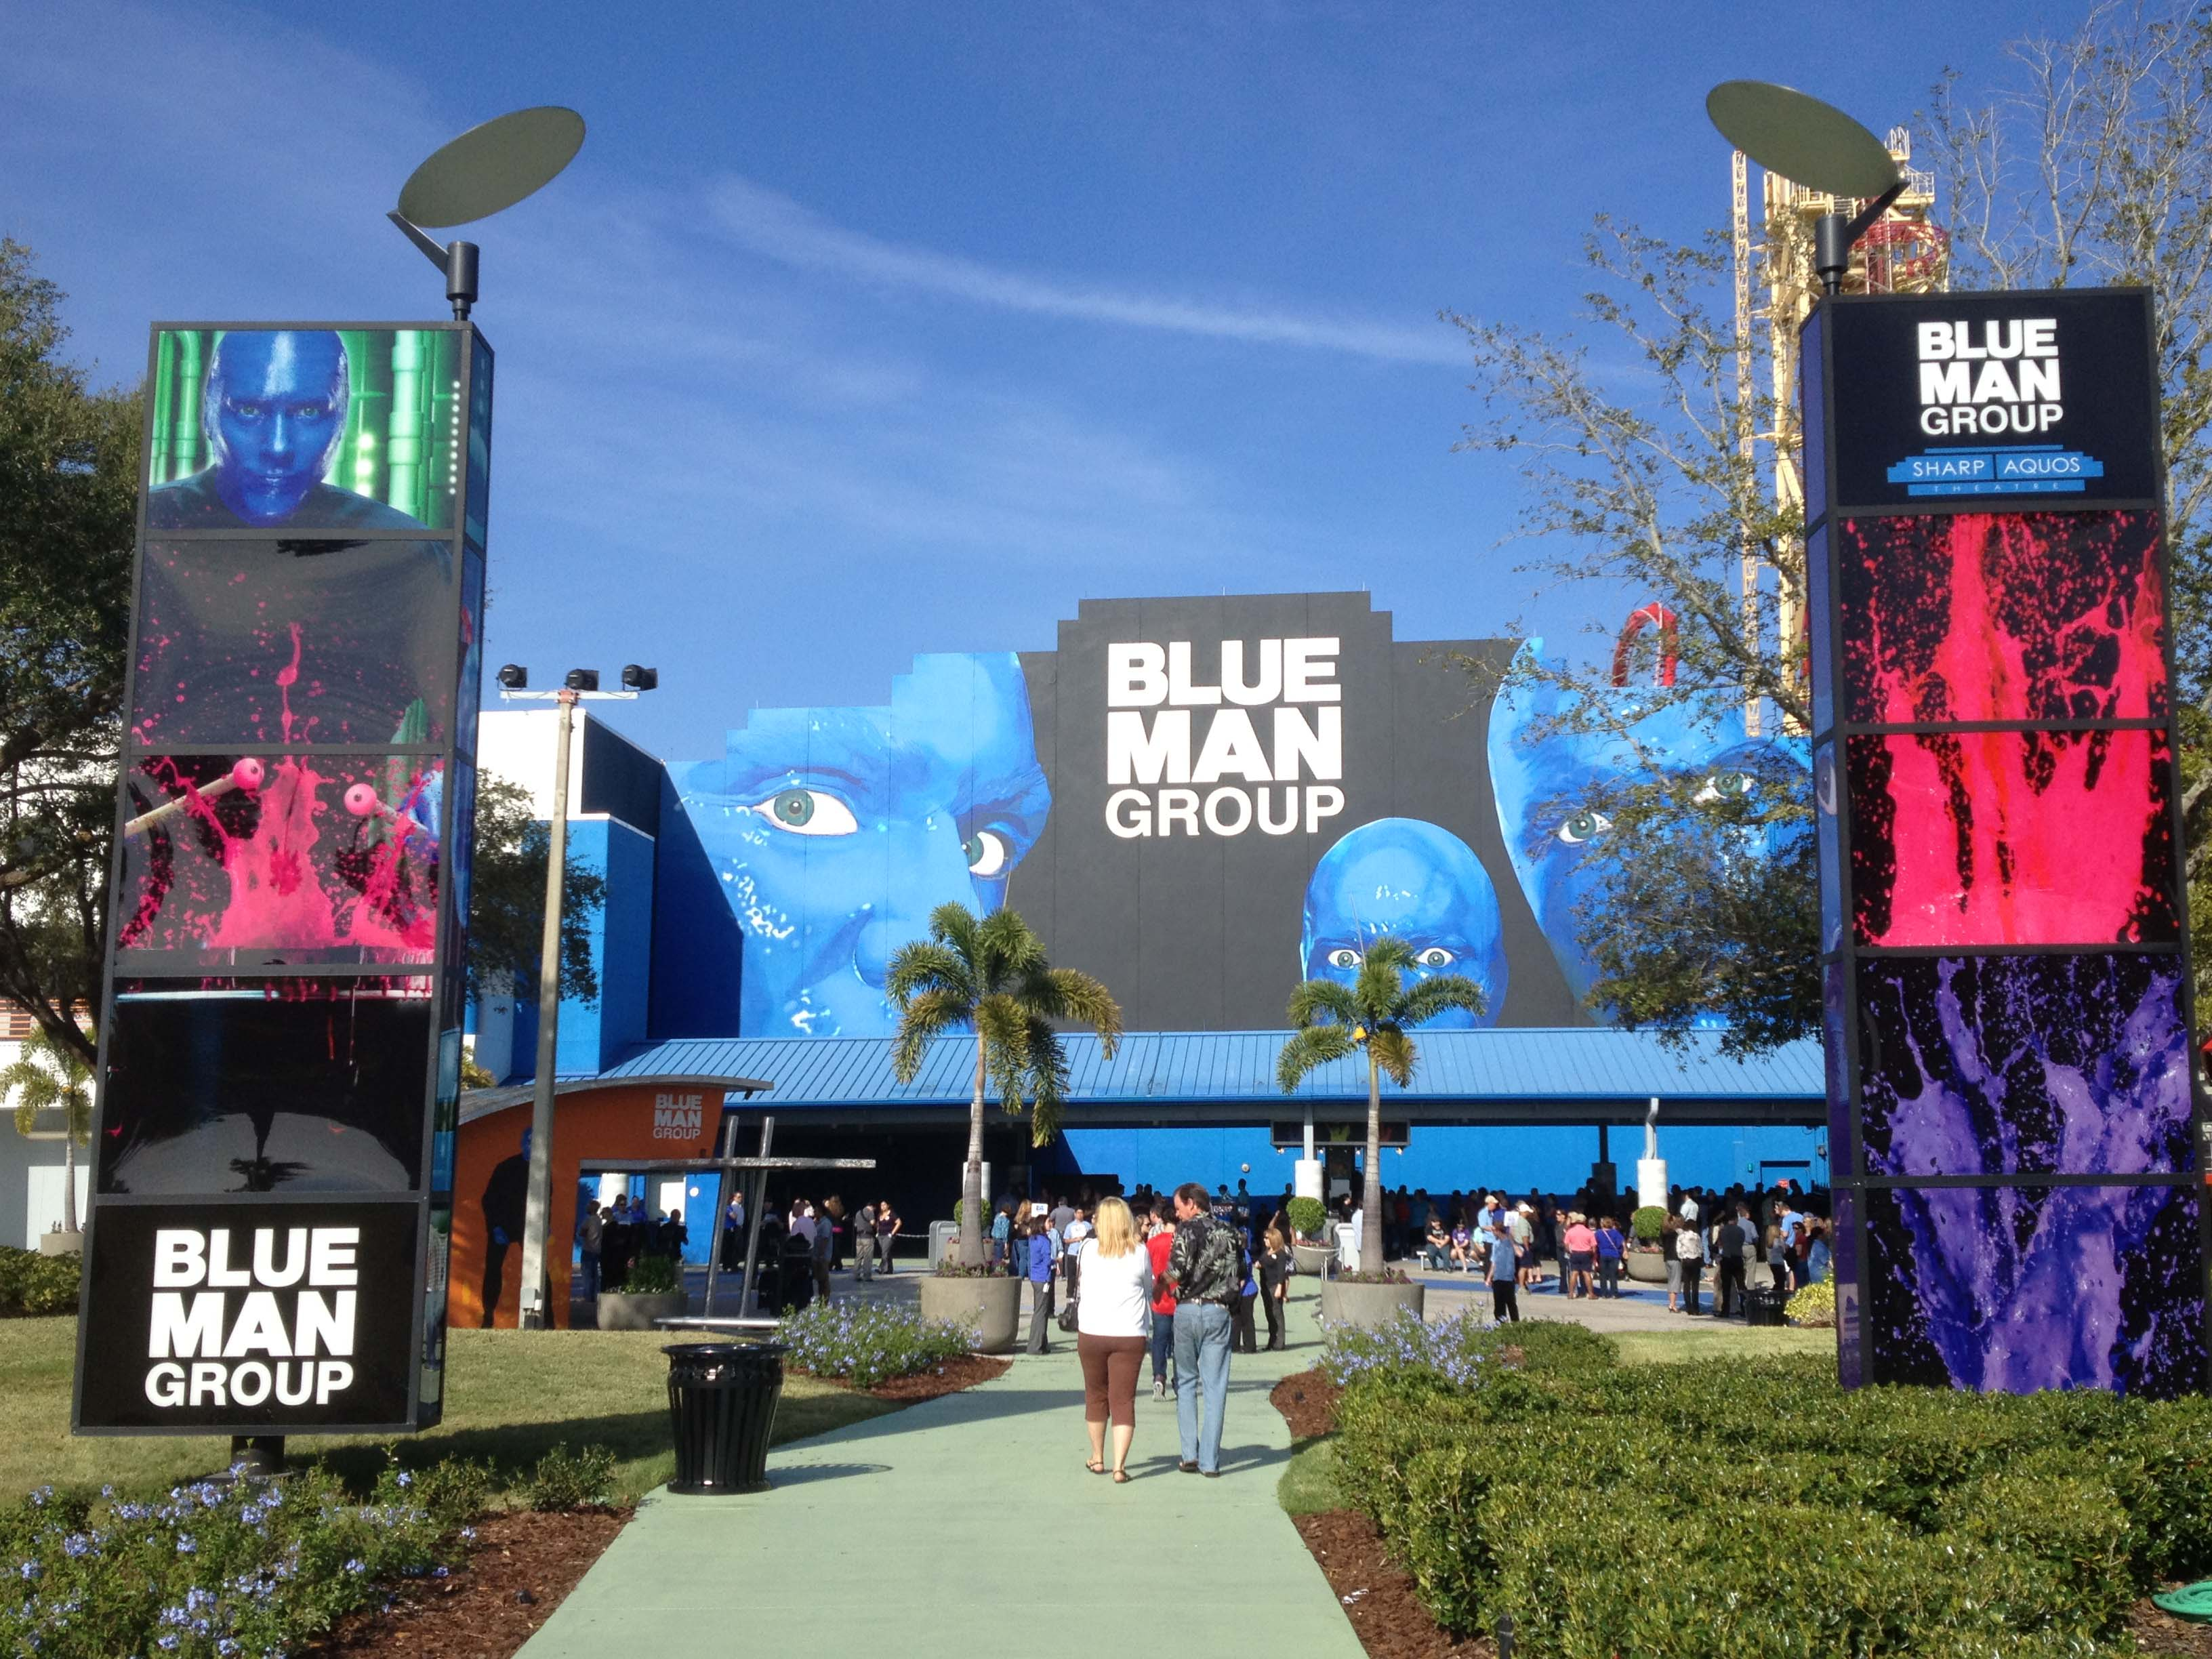 BLUE MAN GROUP LAUNCHES NEW VIP EXPERIENCE